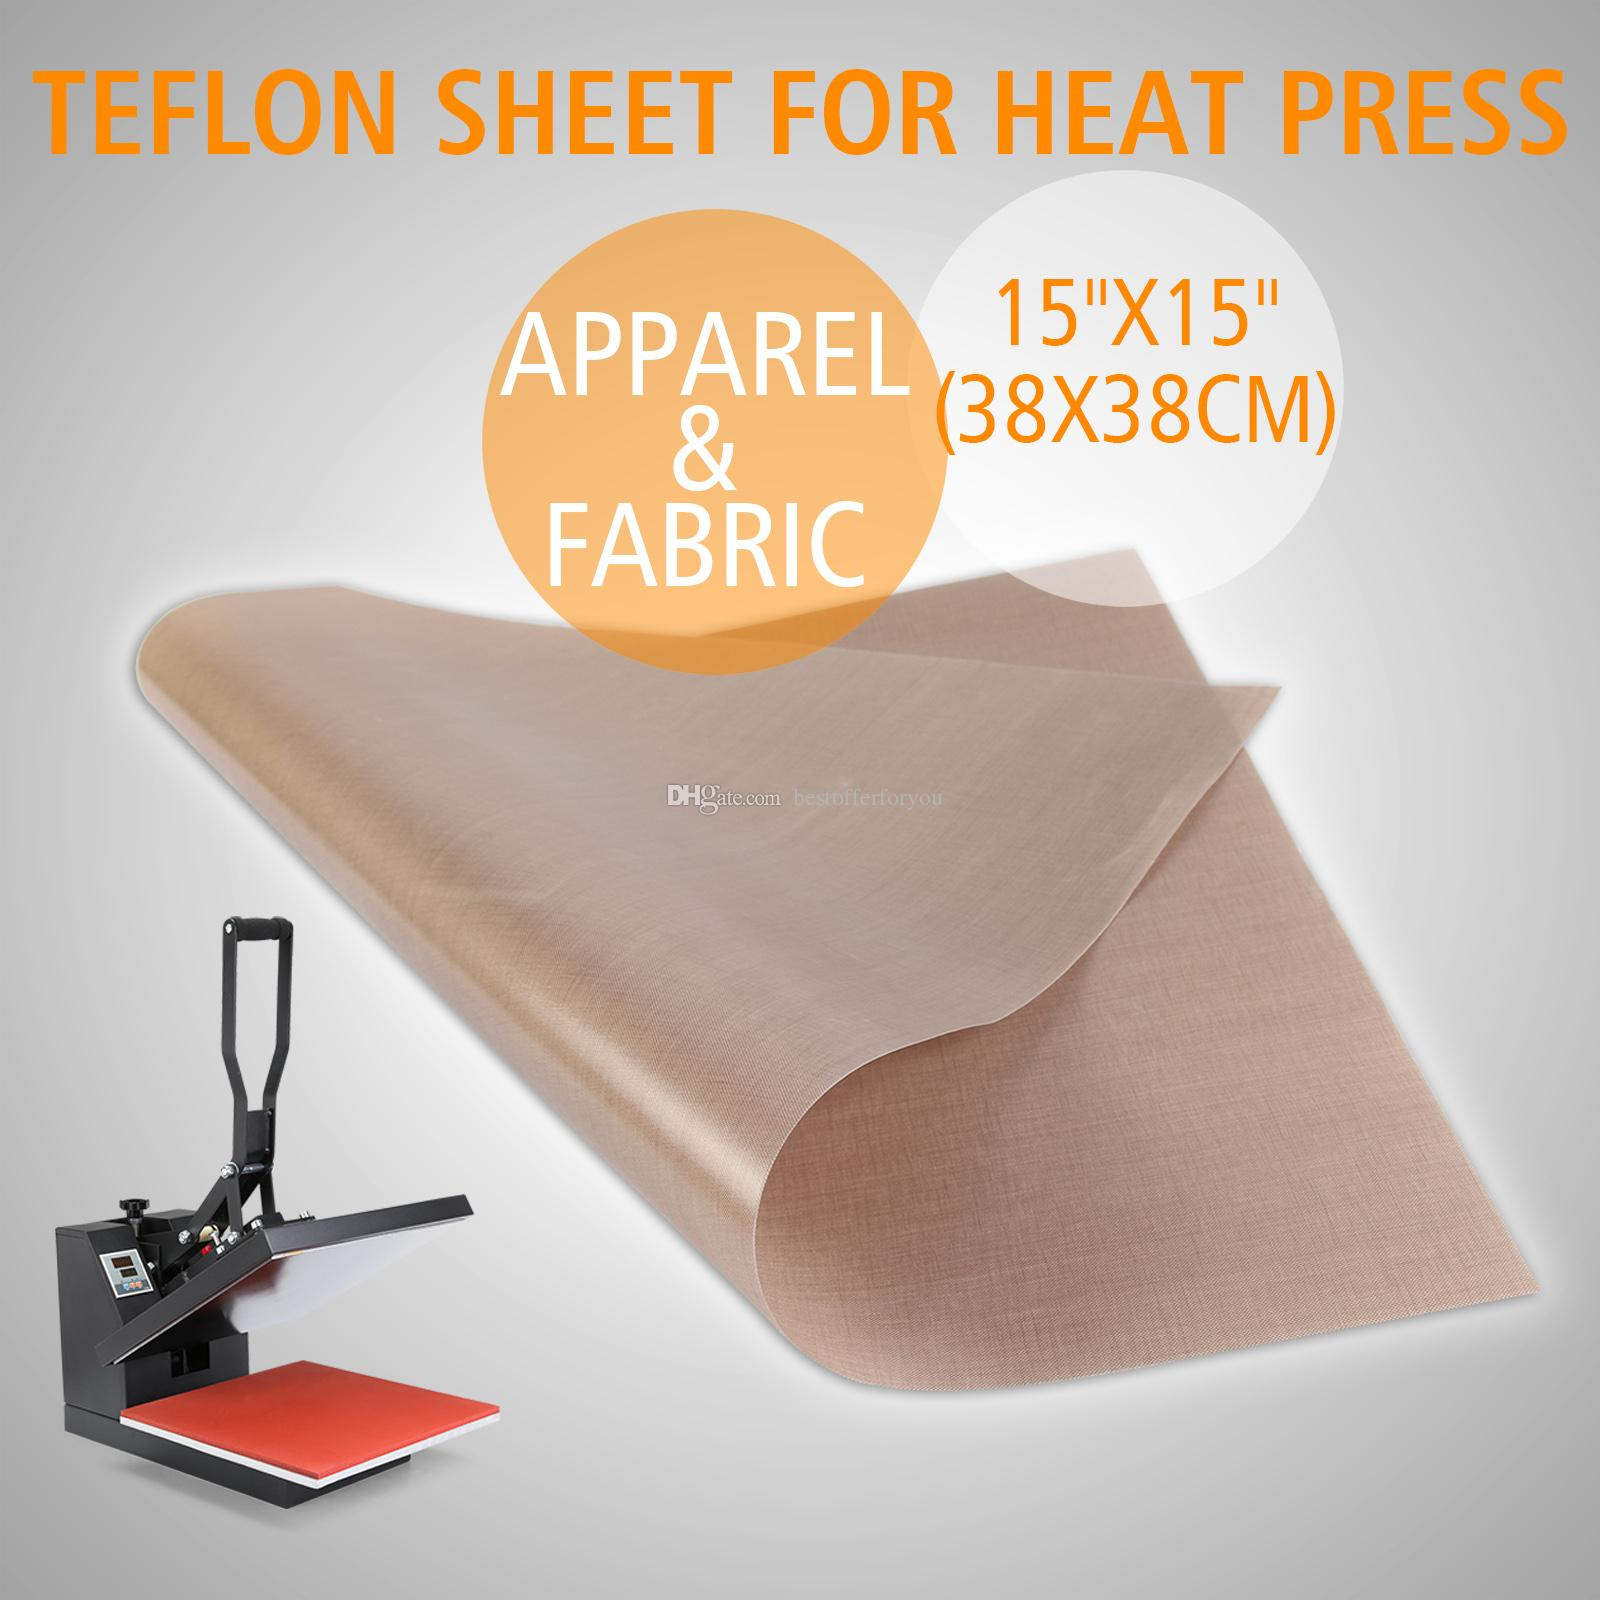 Set of 3 Teflonsheet For 15x15 Heat Press machine reusable Craft Sheet non stick